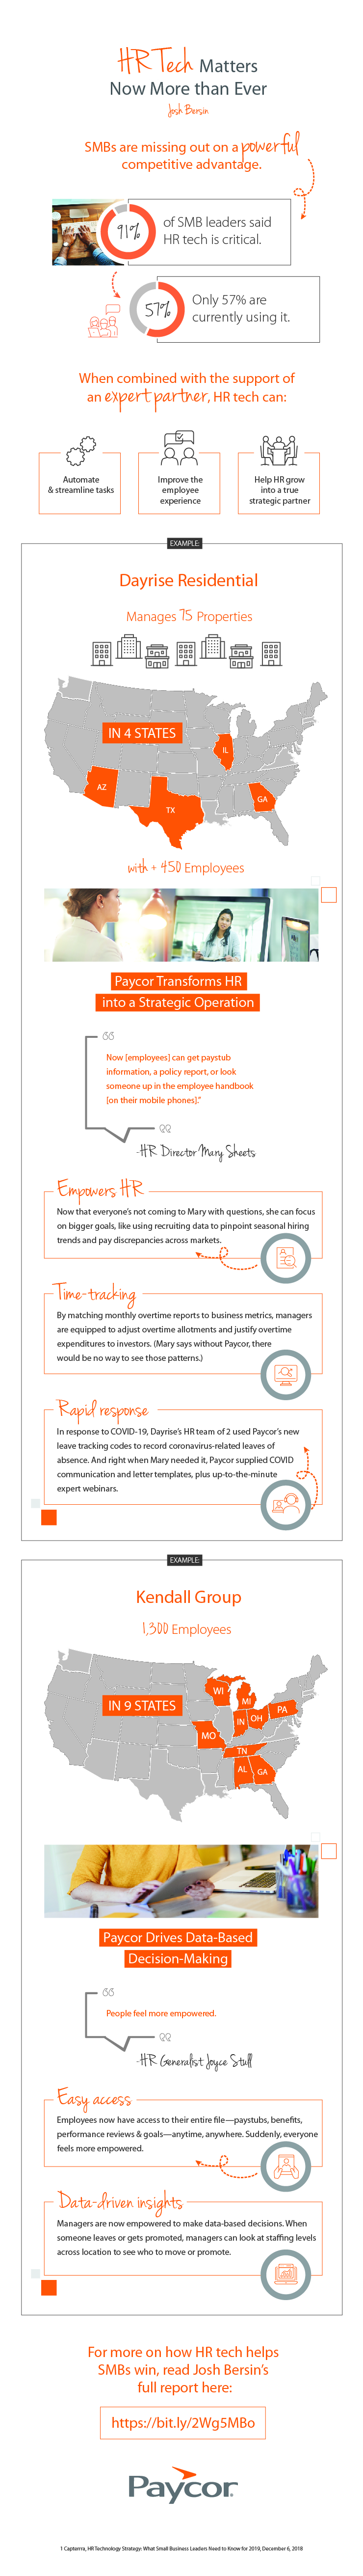 HR technology infographic